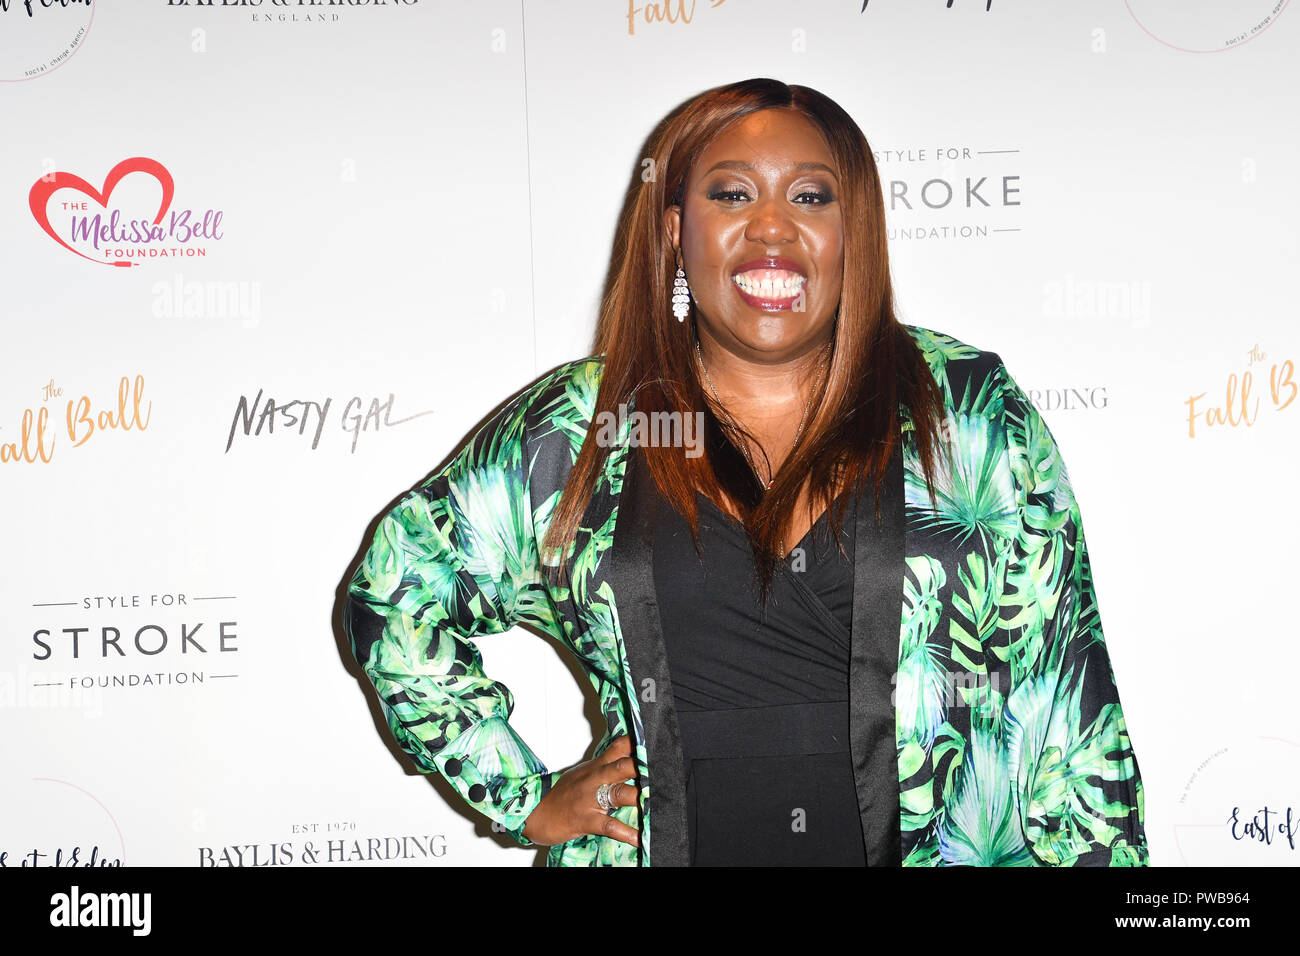 London, UK. 14th Oct, 2018. Chizzy Akudolu attends gala dinner and concert to raise money and awareness for the Melissa Bell Foundation and Style For Stroke Foundation. 14 October 2018. Credit: Picture Capital/Alamy Live News Stock Photo